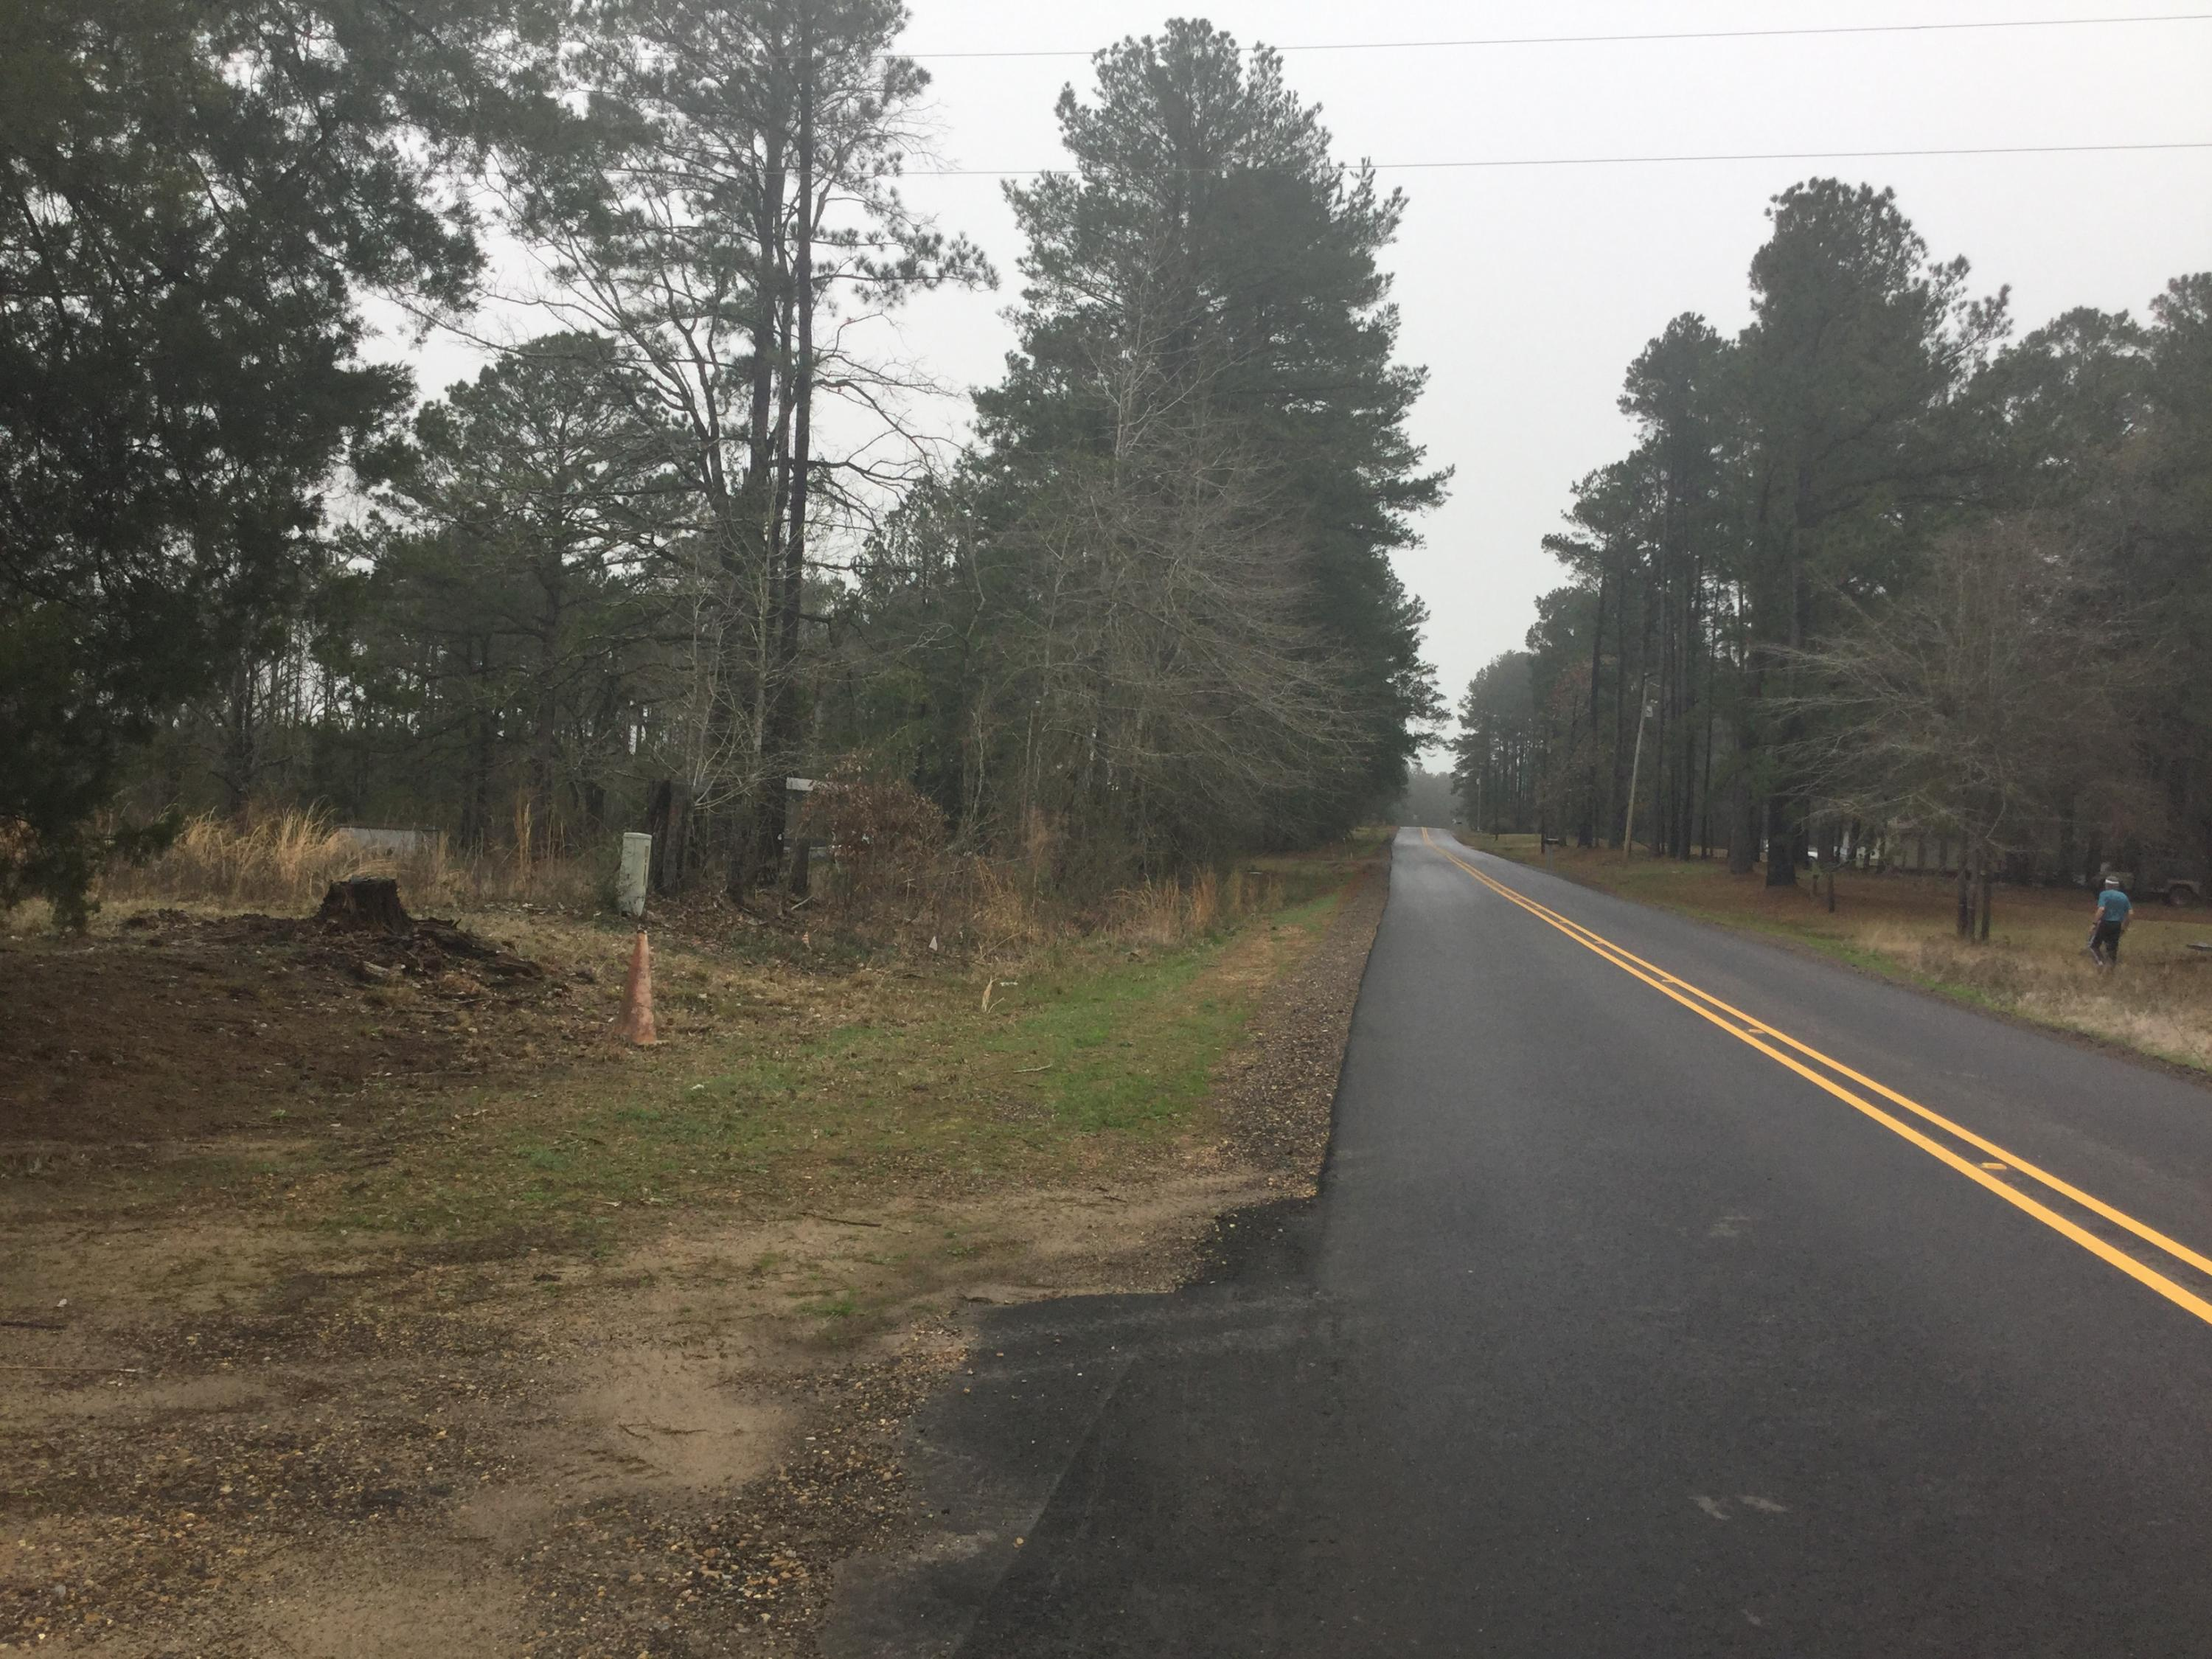 Natchitoches land for sale,  Waters Well Road Hwy 478, Natchitoches LA - $126,500